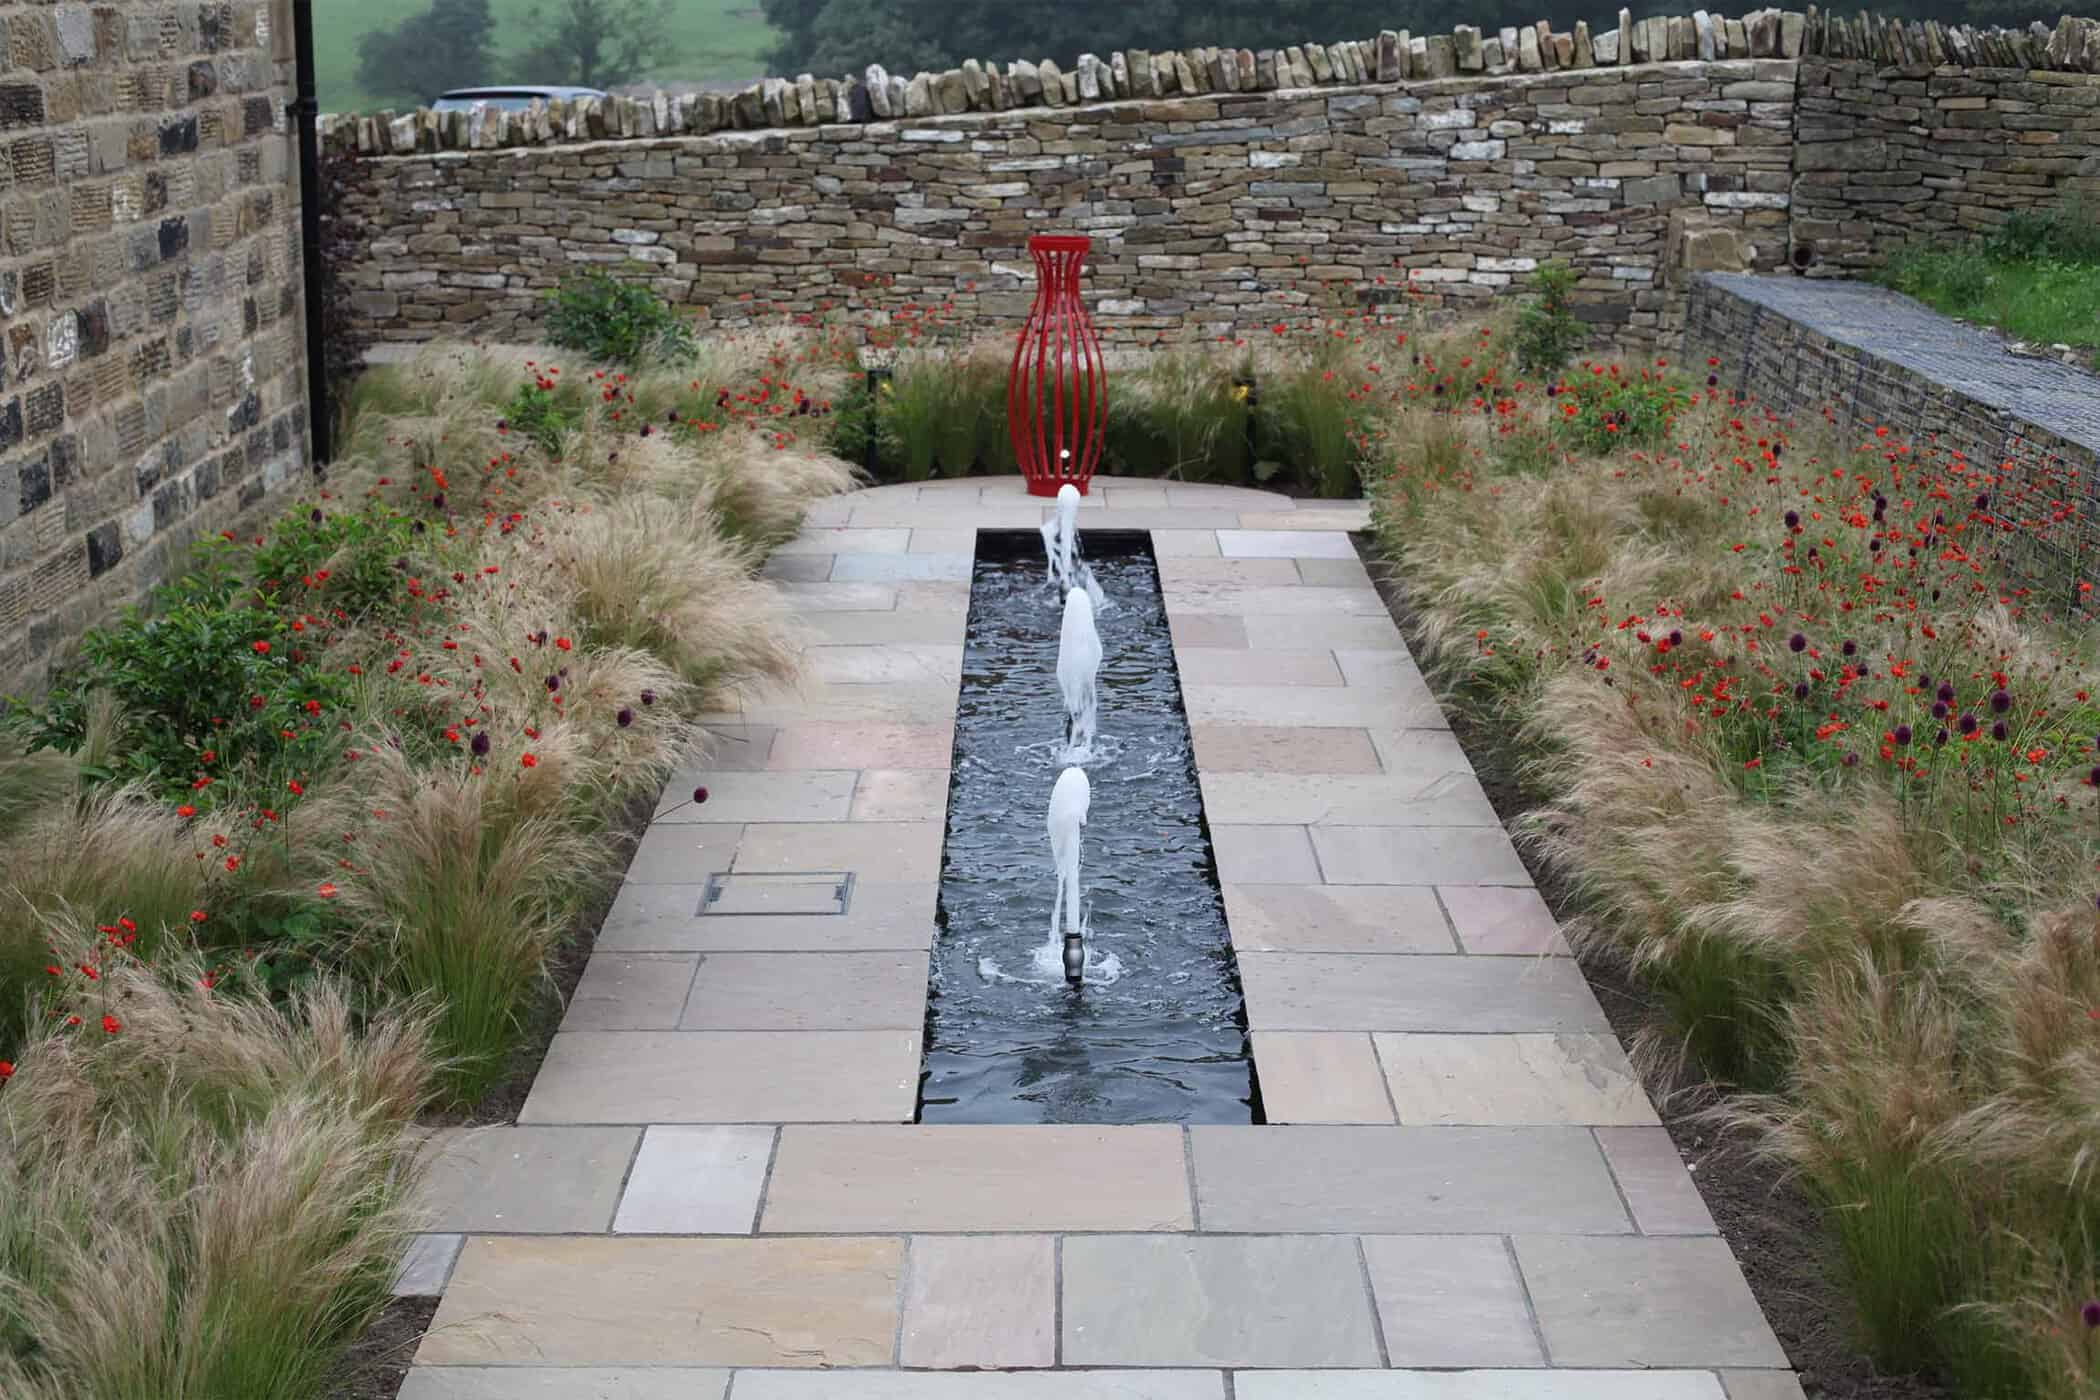 Barn Conversion-bestall and co-Water feature-Grassy Planting -Focal Point